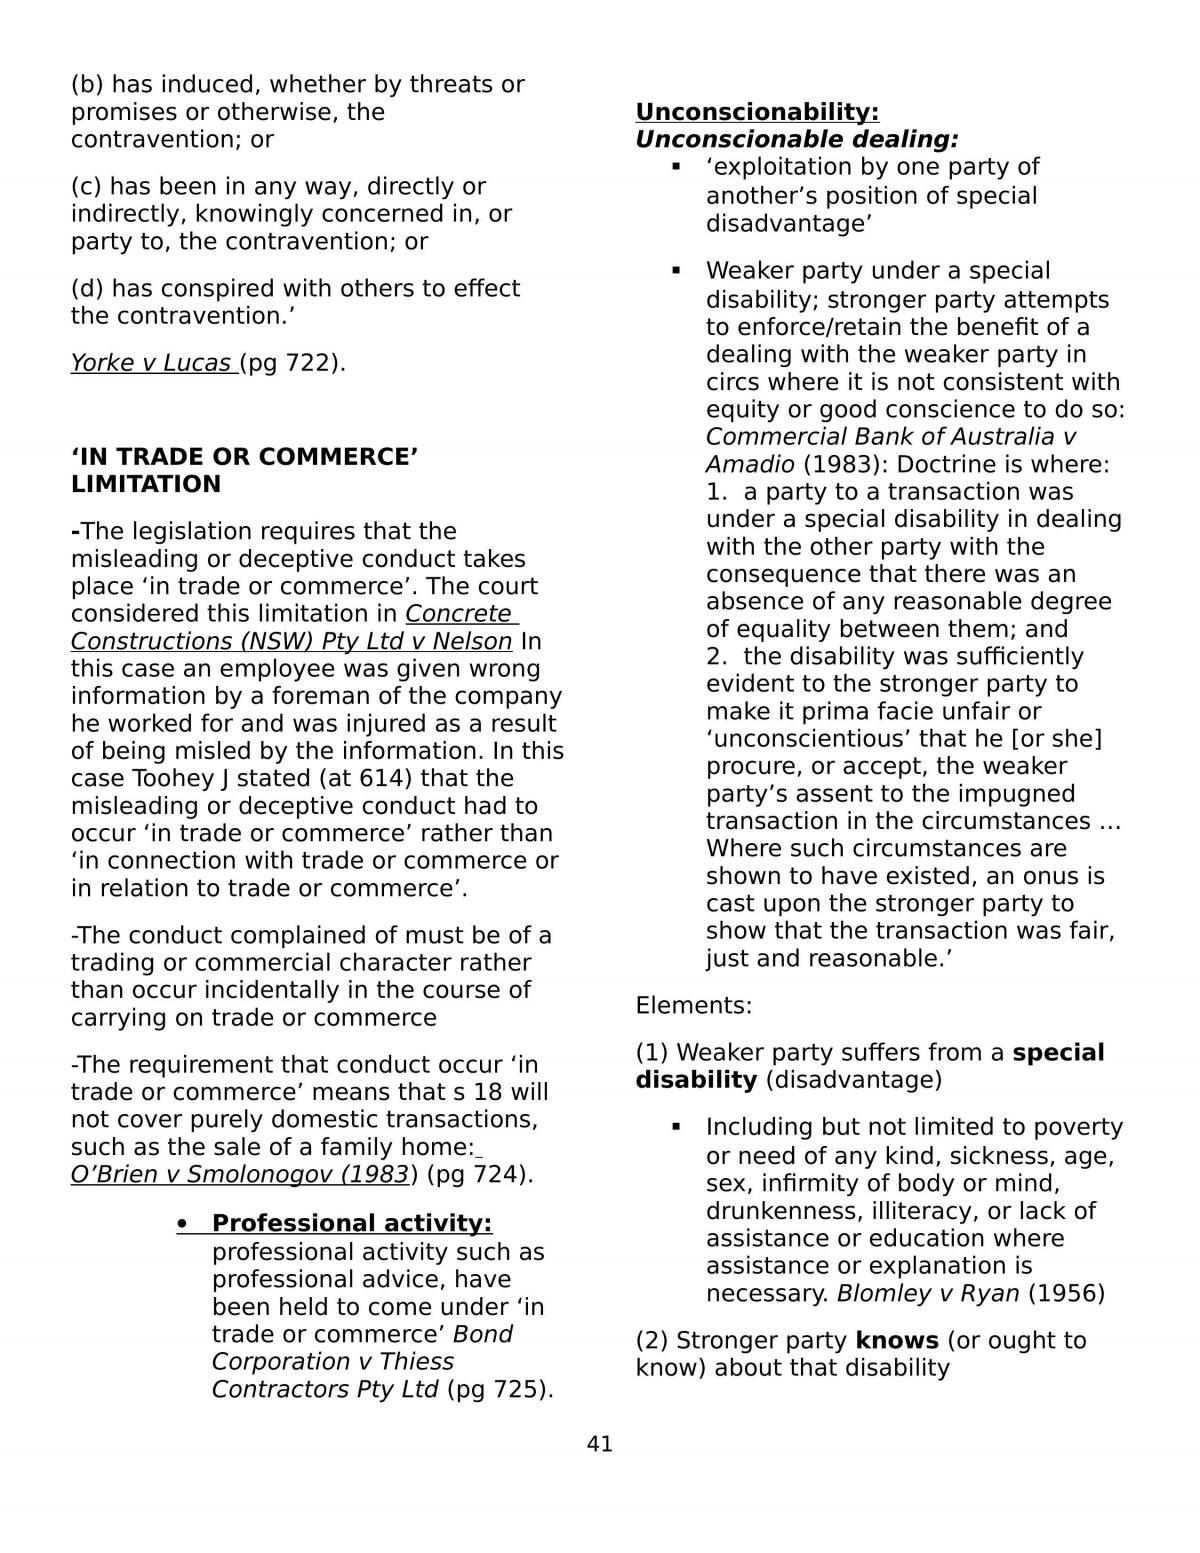 Contracts Exam Notes - Page 41